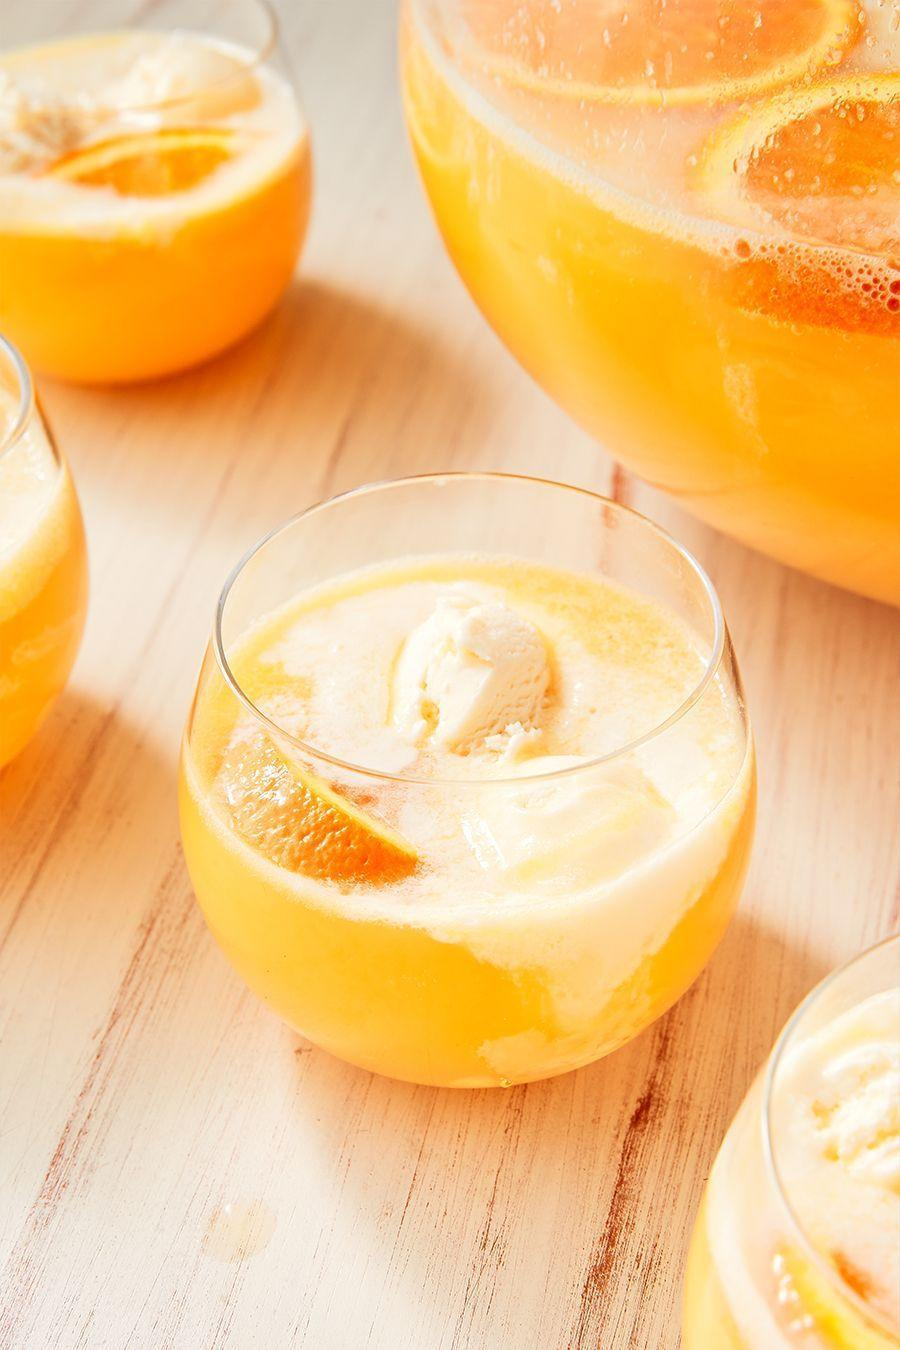 """<p>This drink will take you back to the good old days of sitting in the backyard during the summertime, licking your favorite popsicle, and feeling the grass between your toes. </p><p><strong><em>Get the recipe at <a href=""""https://www.delish.com/cooking/recipe-ideas/recipes/a52743/creamsicle-punch-recipe/"""" rel=""""nofollow noopener"""" target=""""_blank"""" data-ylk=""""slk:Delish"""" class=""""link rapid-noclick-resp"""">Delish</a>. </em></strong></p>"""